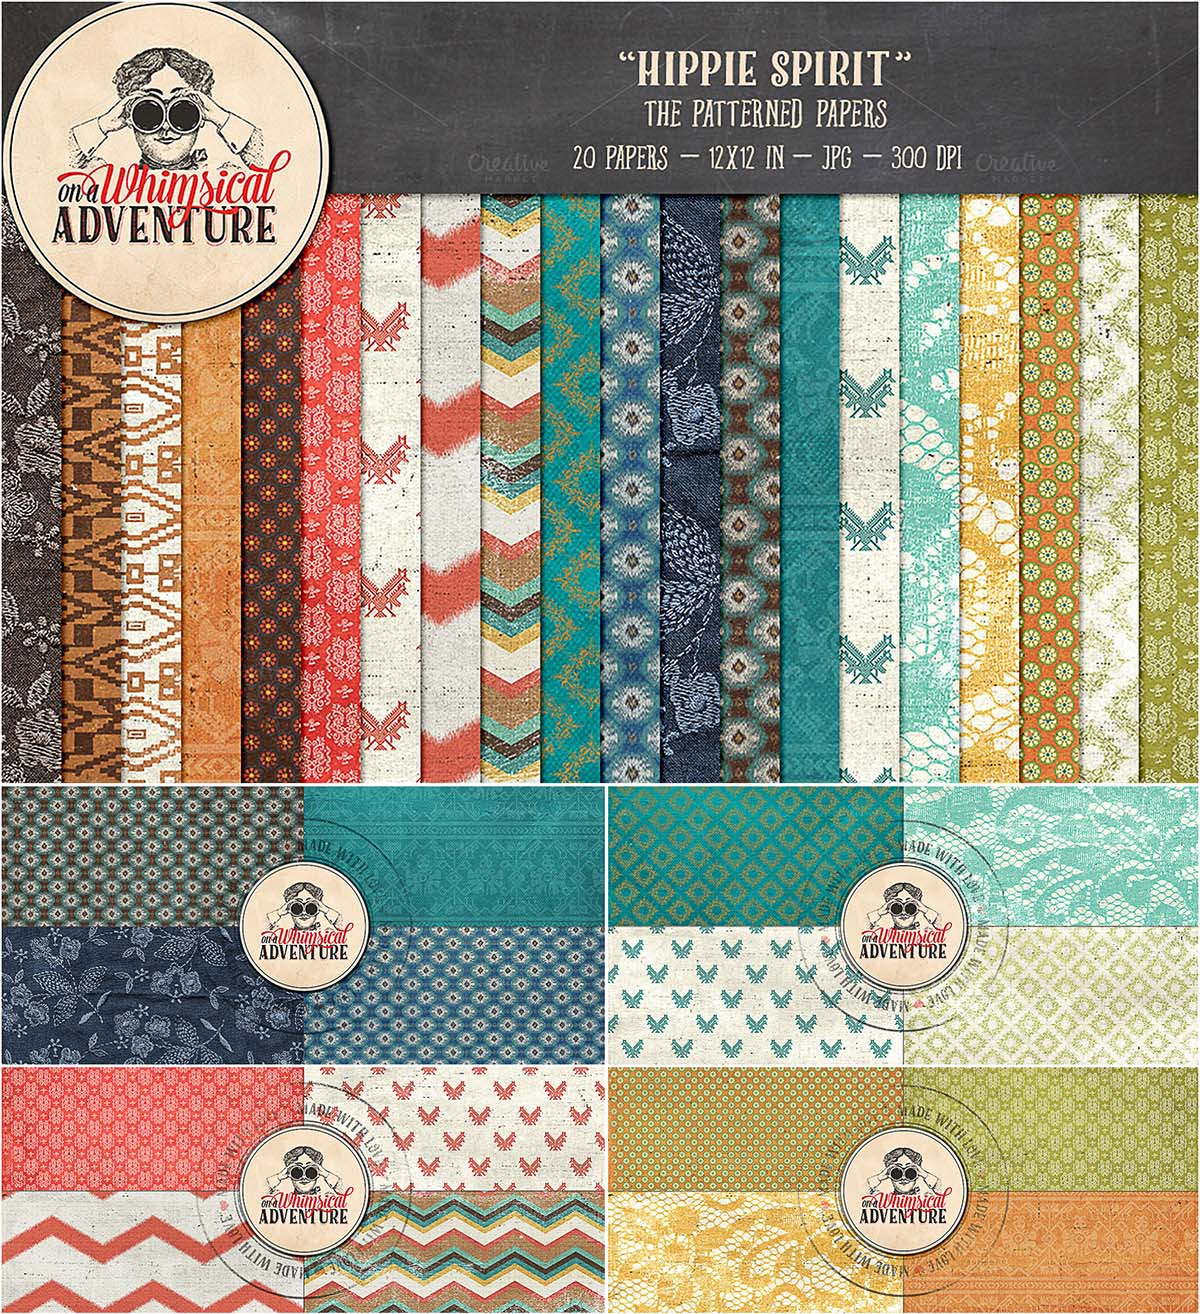 Hippie patterned papers